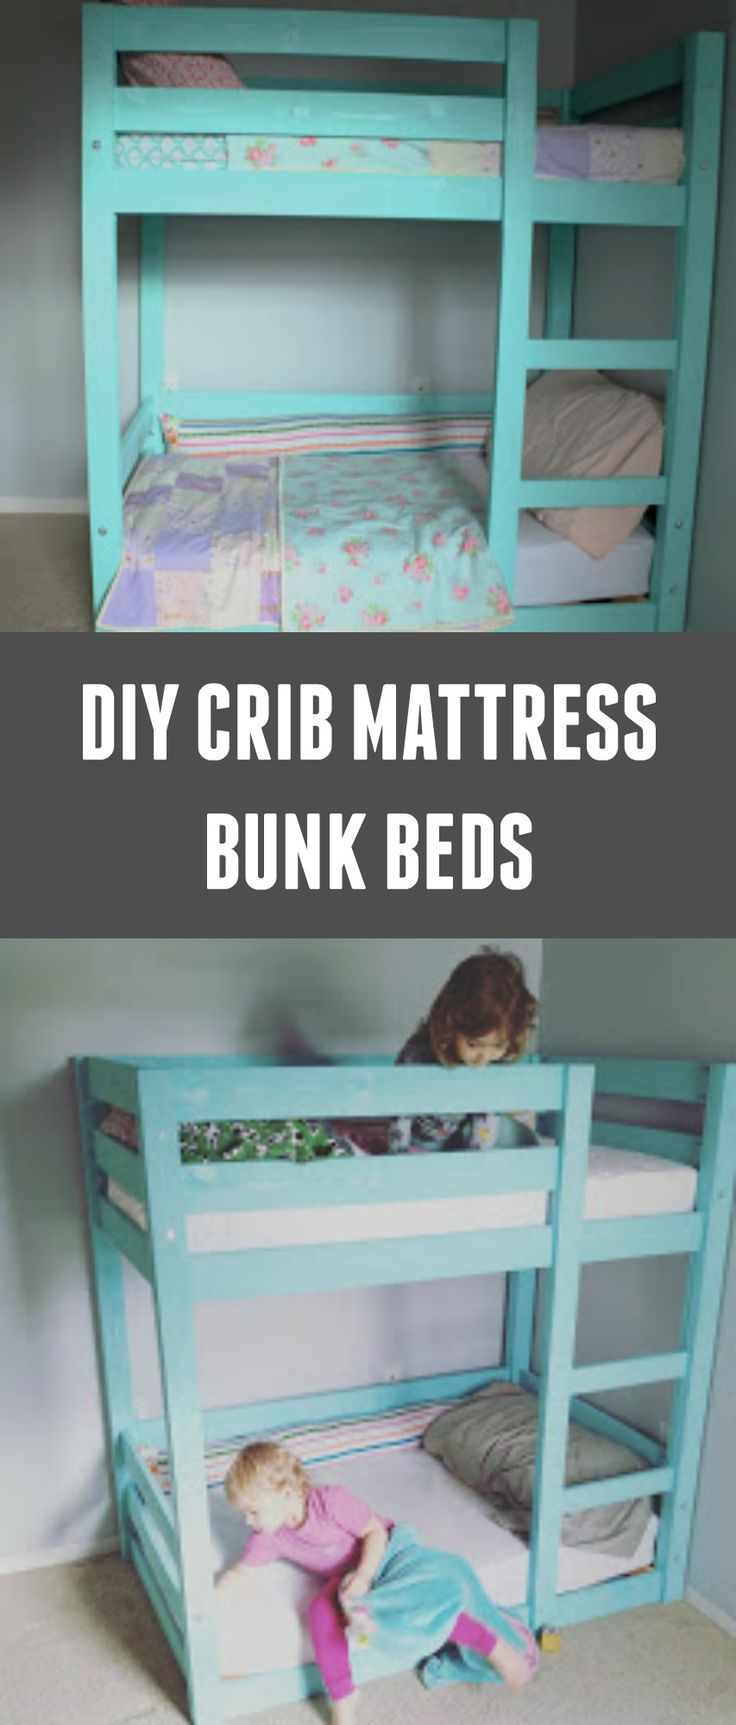 Reader project - bunk beds using crib mattresses for toddlers